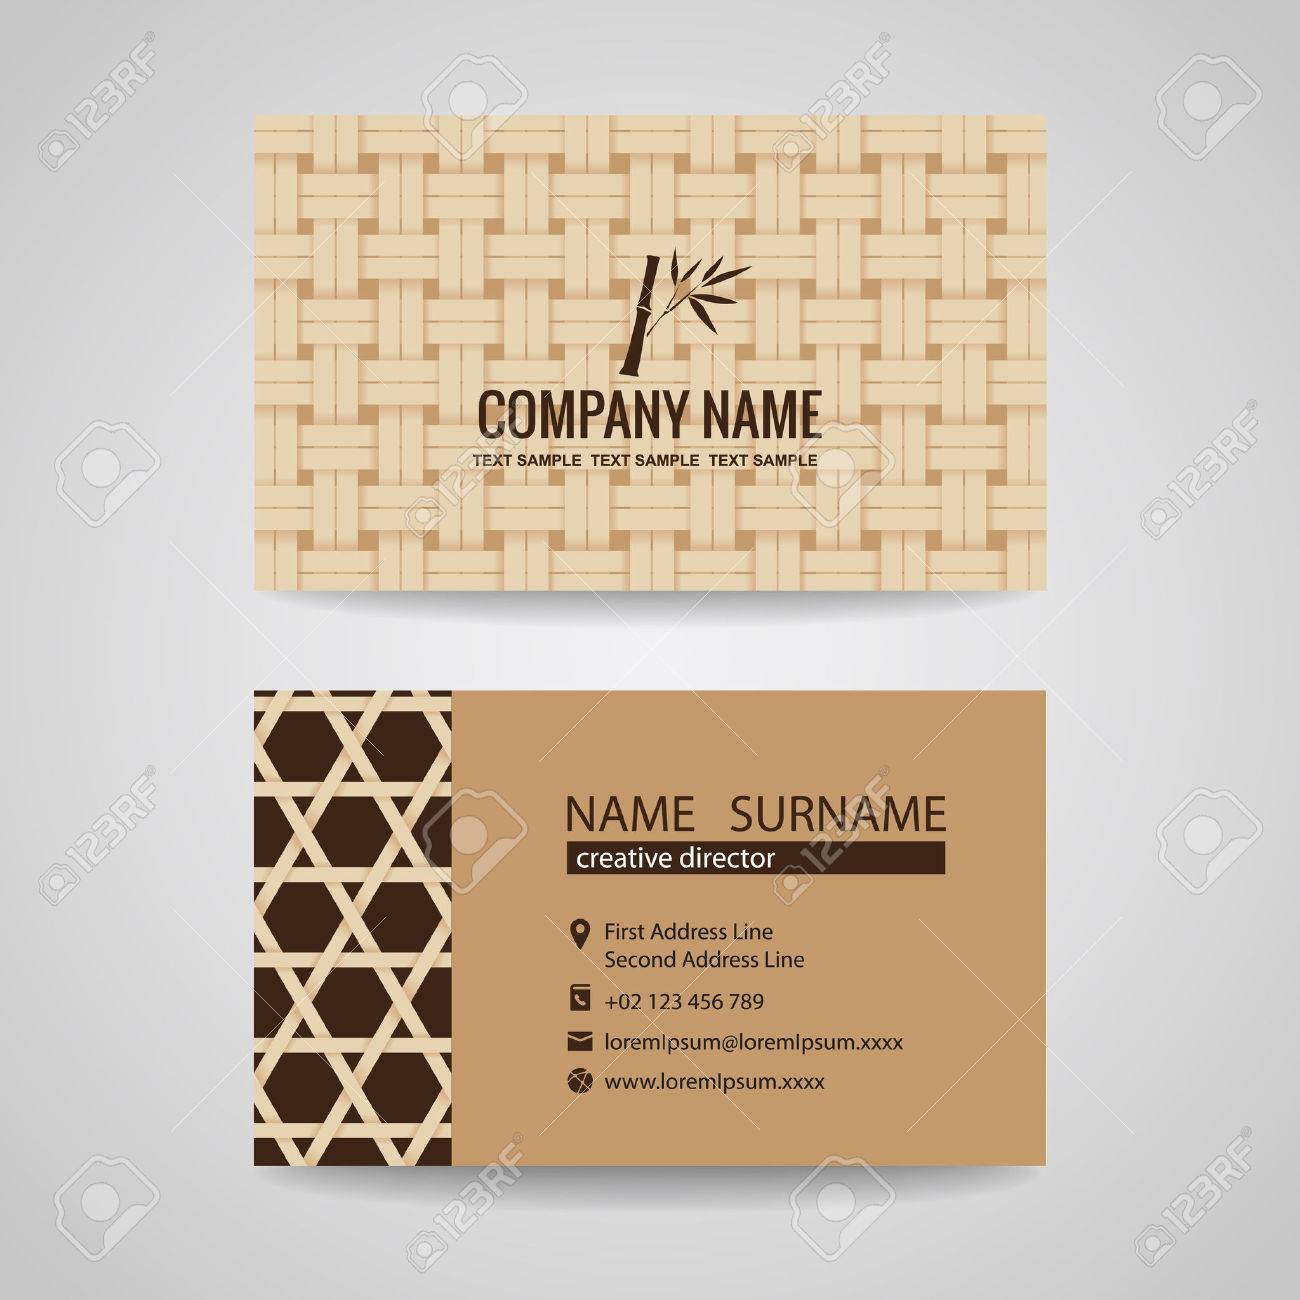 Business card brown bamboo weave sheets texture background royalty business card brown bamboo weave sheets texture background stock vector 41018846 colourmoves